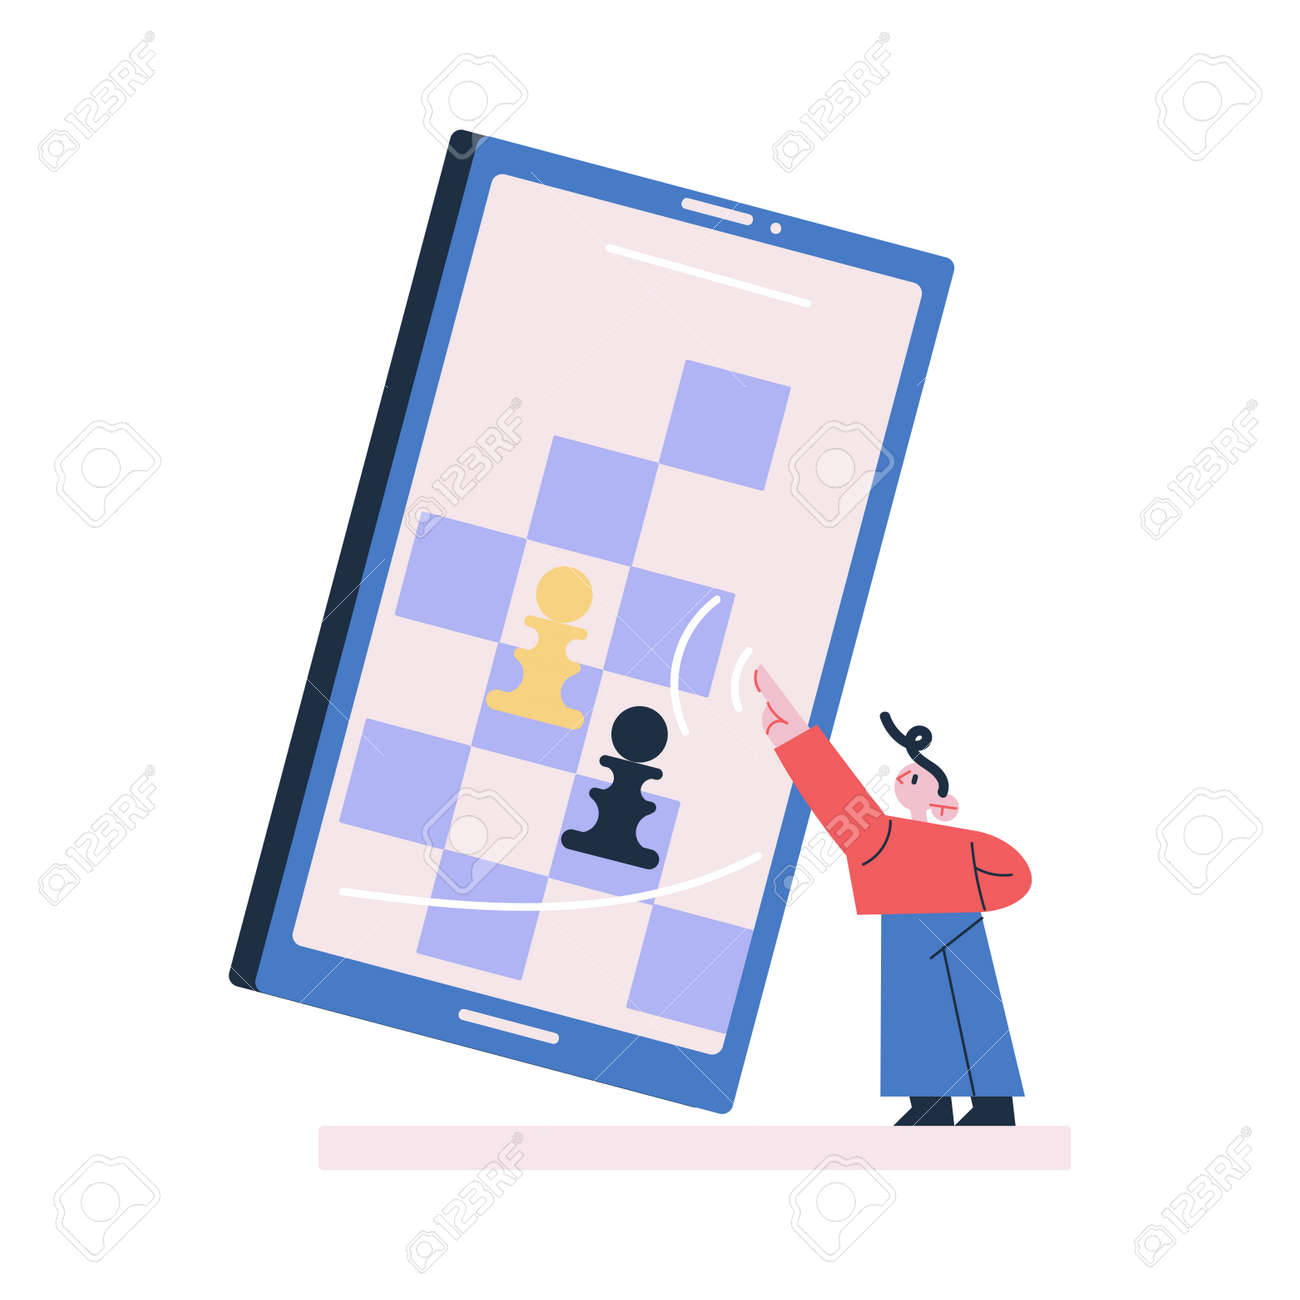 Young boy standing playing chess online on huge tablet - 164877205